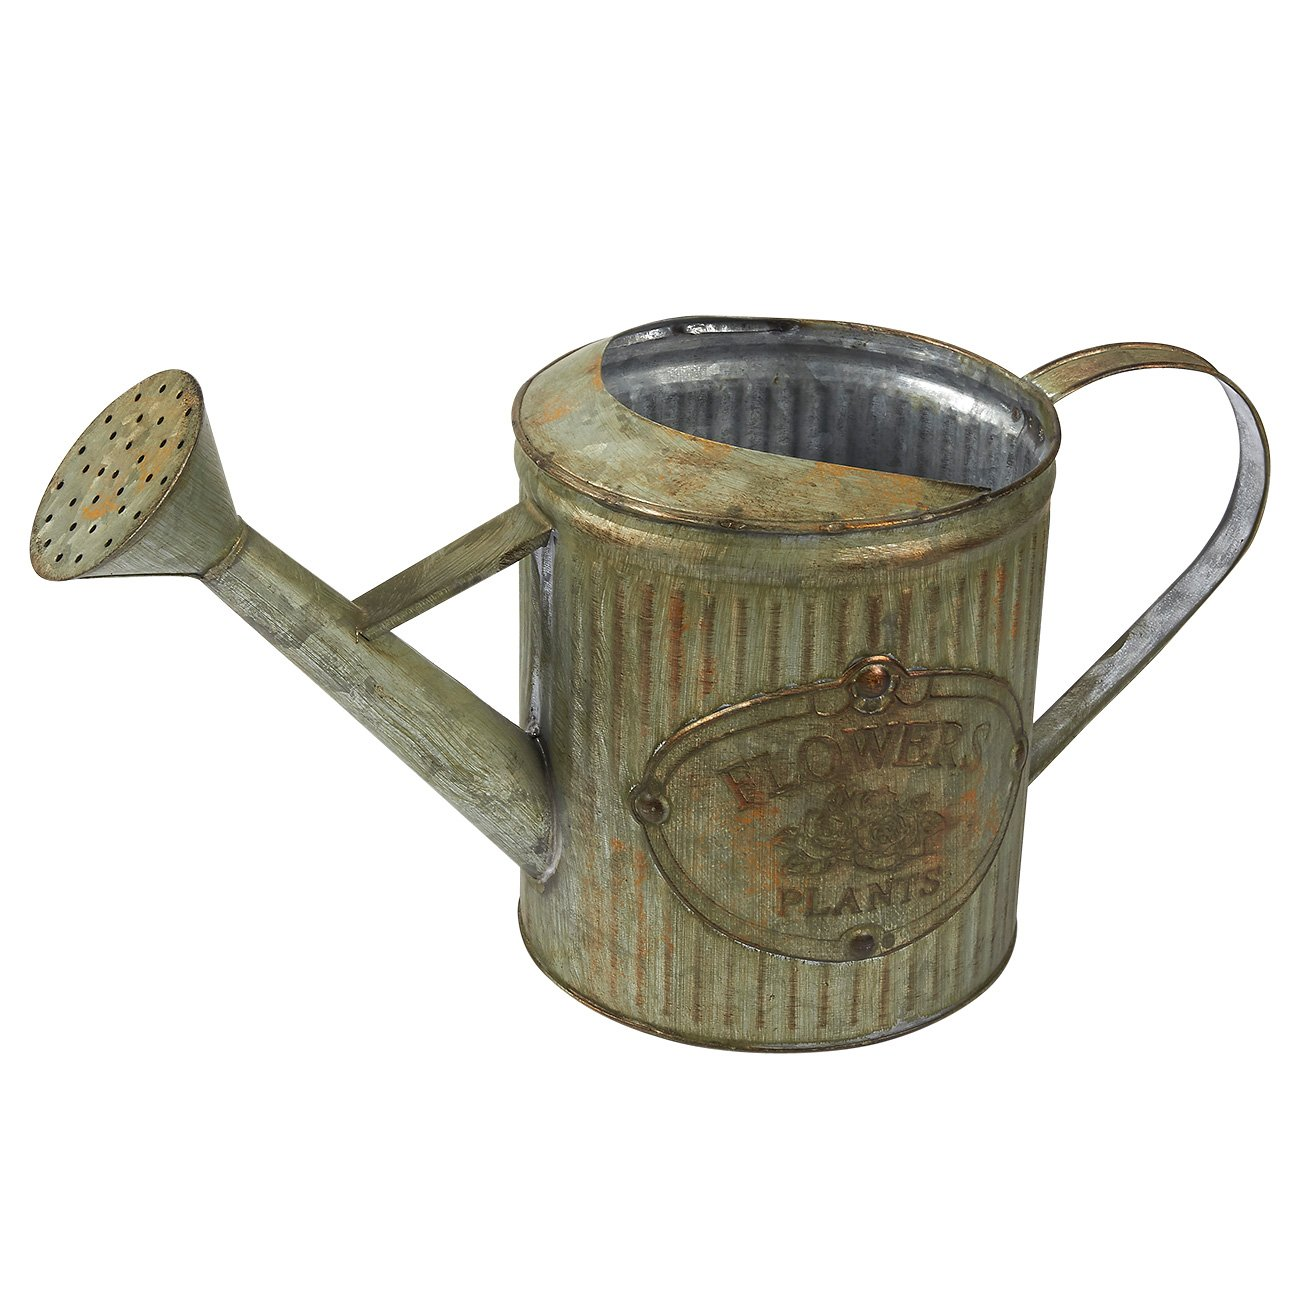 Juvale Watering Can - Rustic Iron Galvanized Water Jug with Handle, Antique Style for Home and Garden, 14.75 x 8.25 x 6.25 Inches